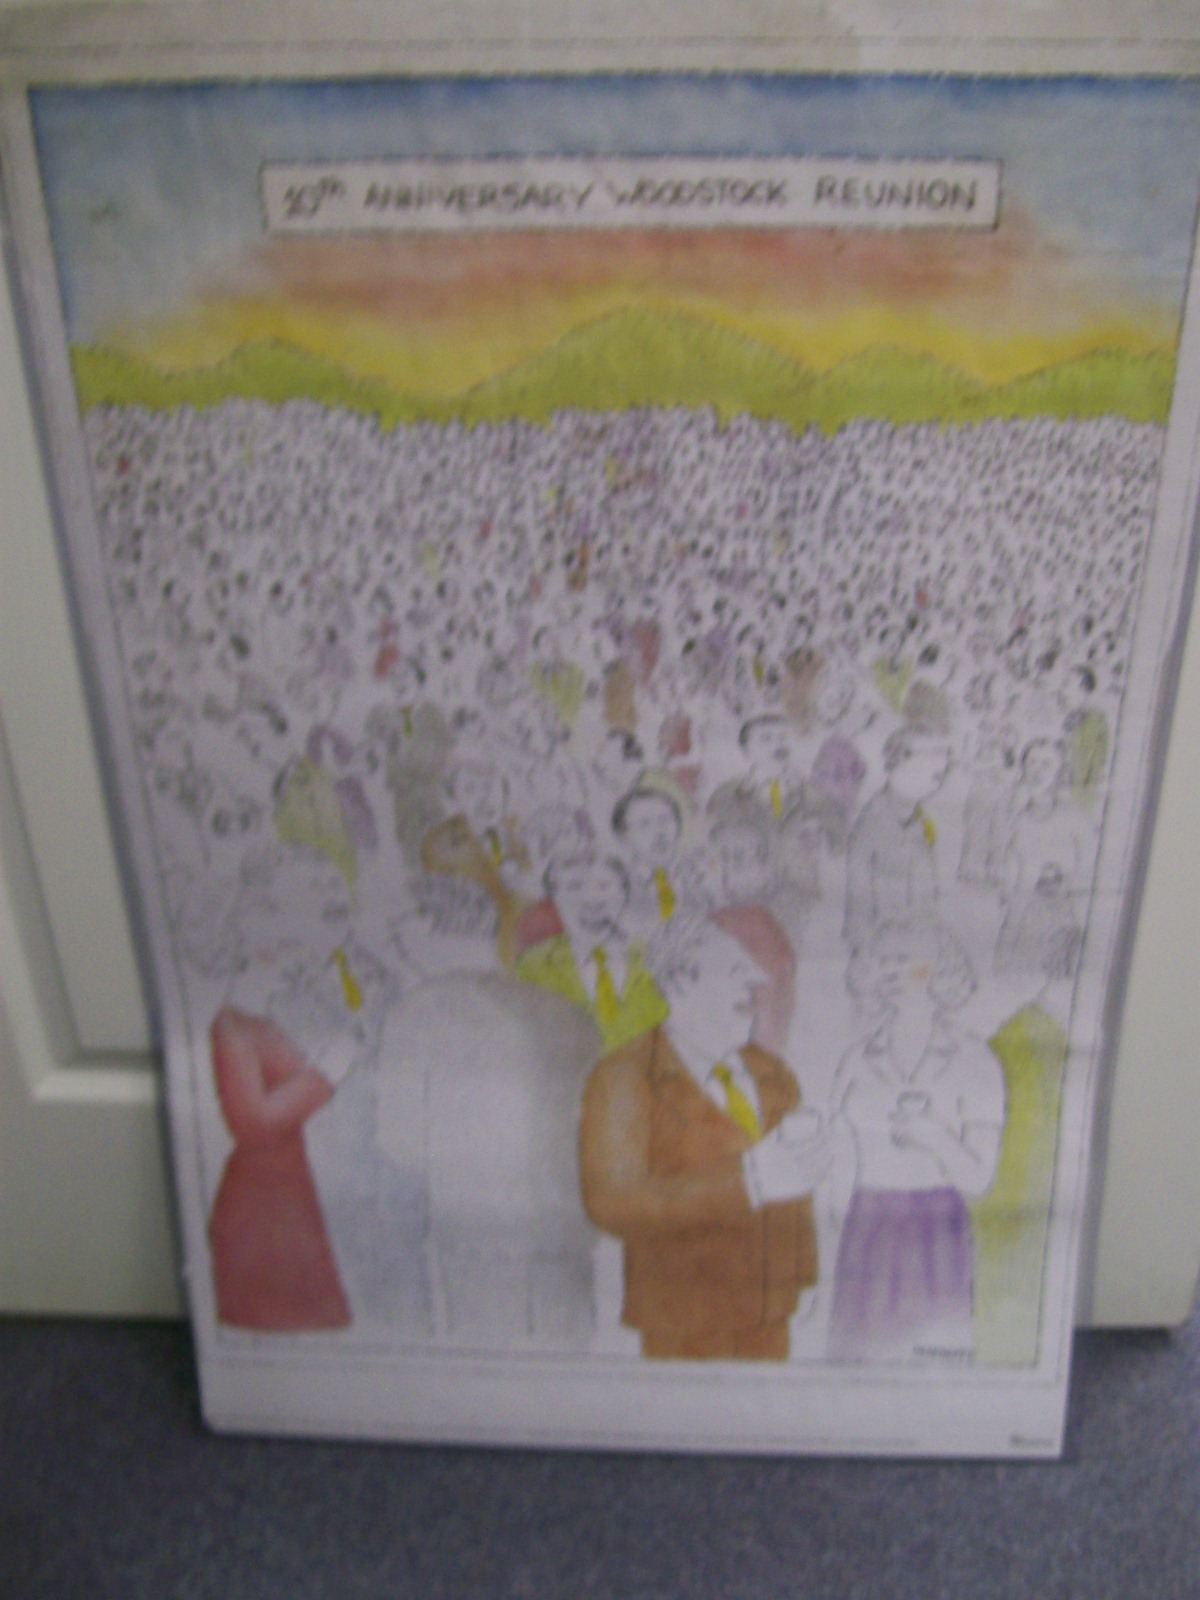 10th Anniversary Woodstock Reunion Poster 1979 Mankoff